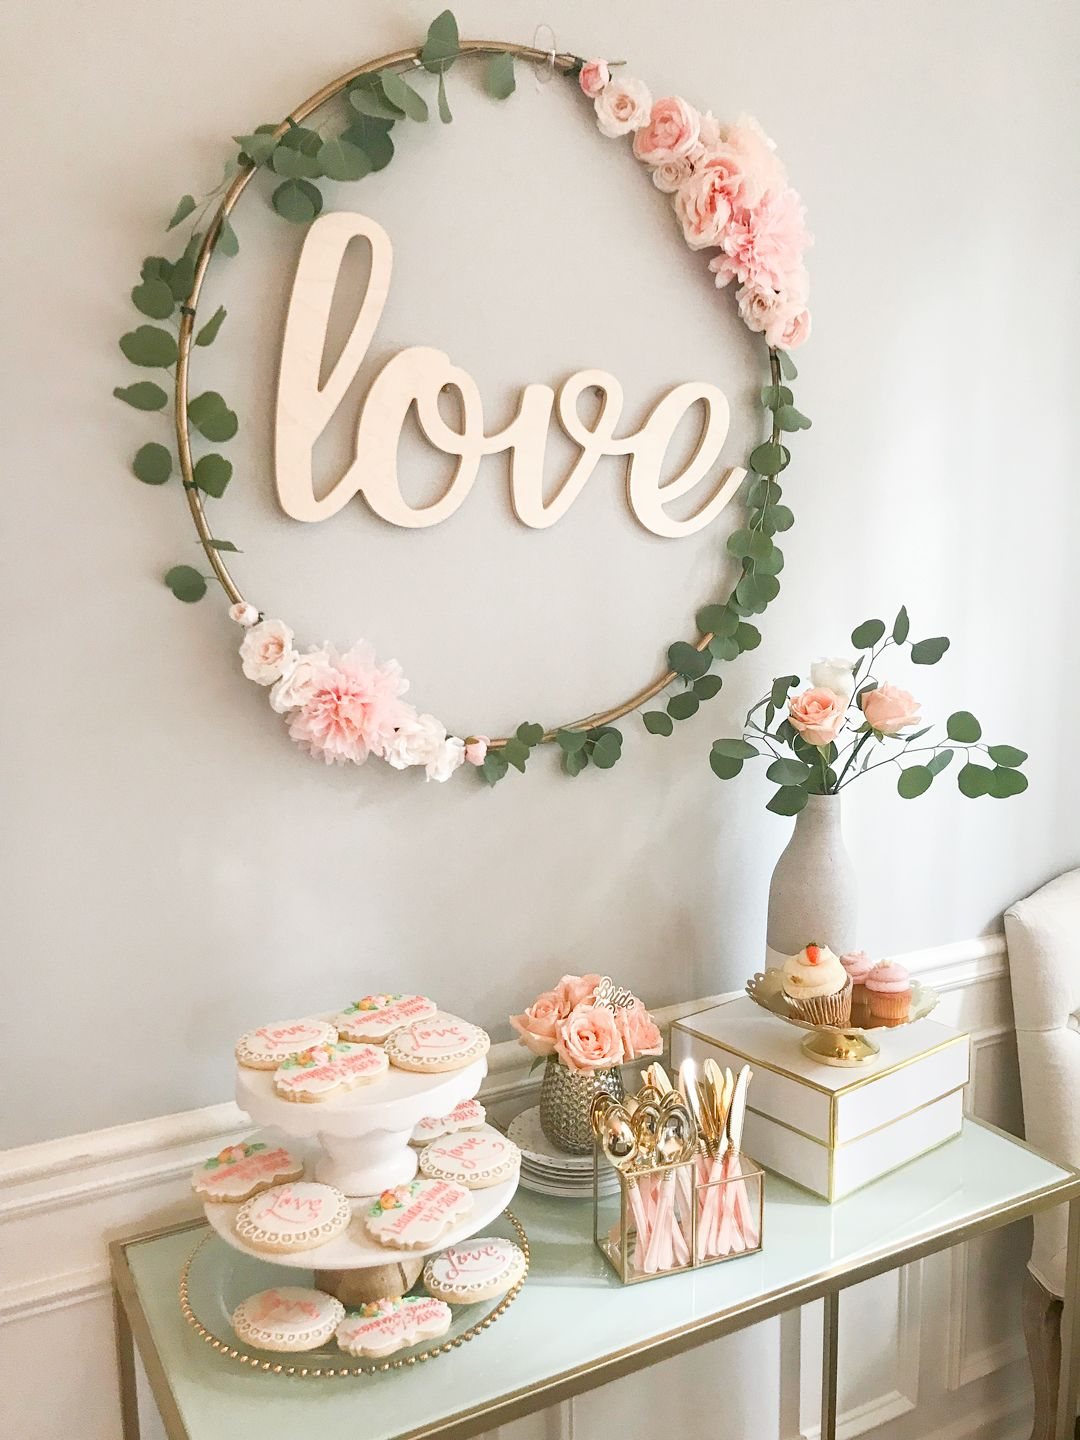 diy hula hoop love sign diy bridal shower decor bridal shower decorations diy hula hoop transformation strawberry chic website